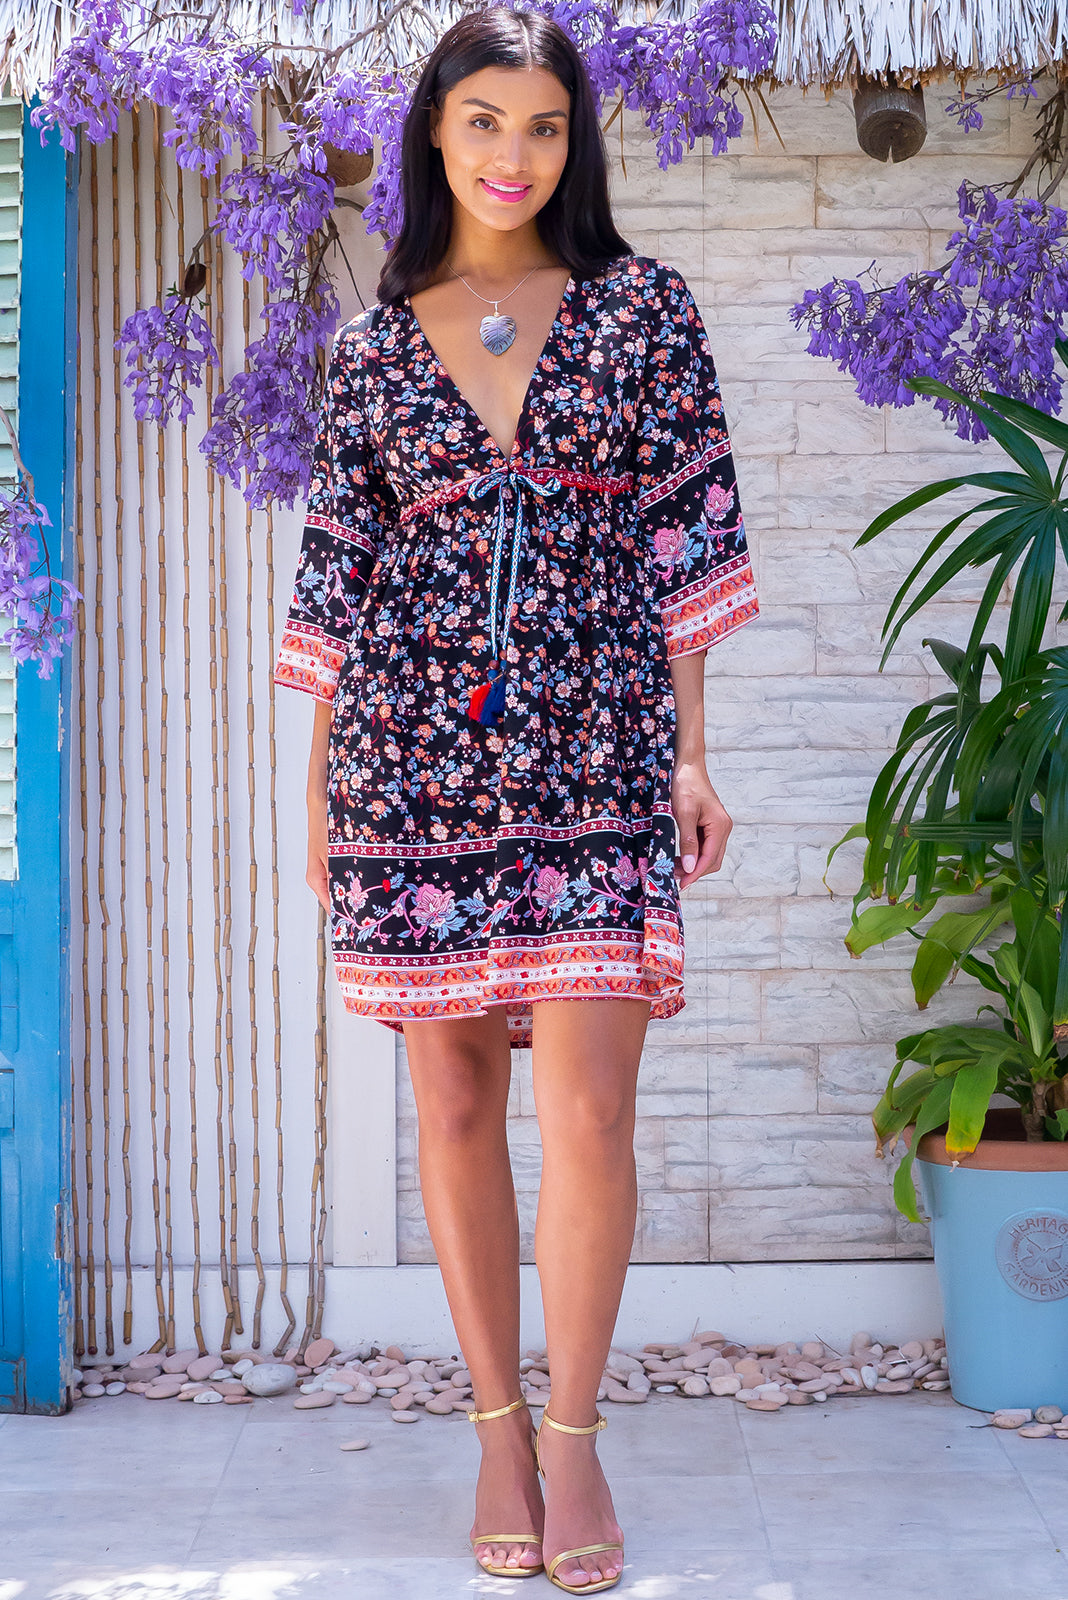 The Layla Island Night Mini Dress features caftan sleeves, adjustable drawstring waist, side pockets and 100% rayon in black base with colourful vine print and border feature.